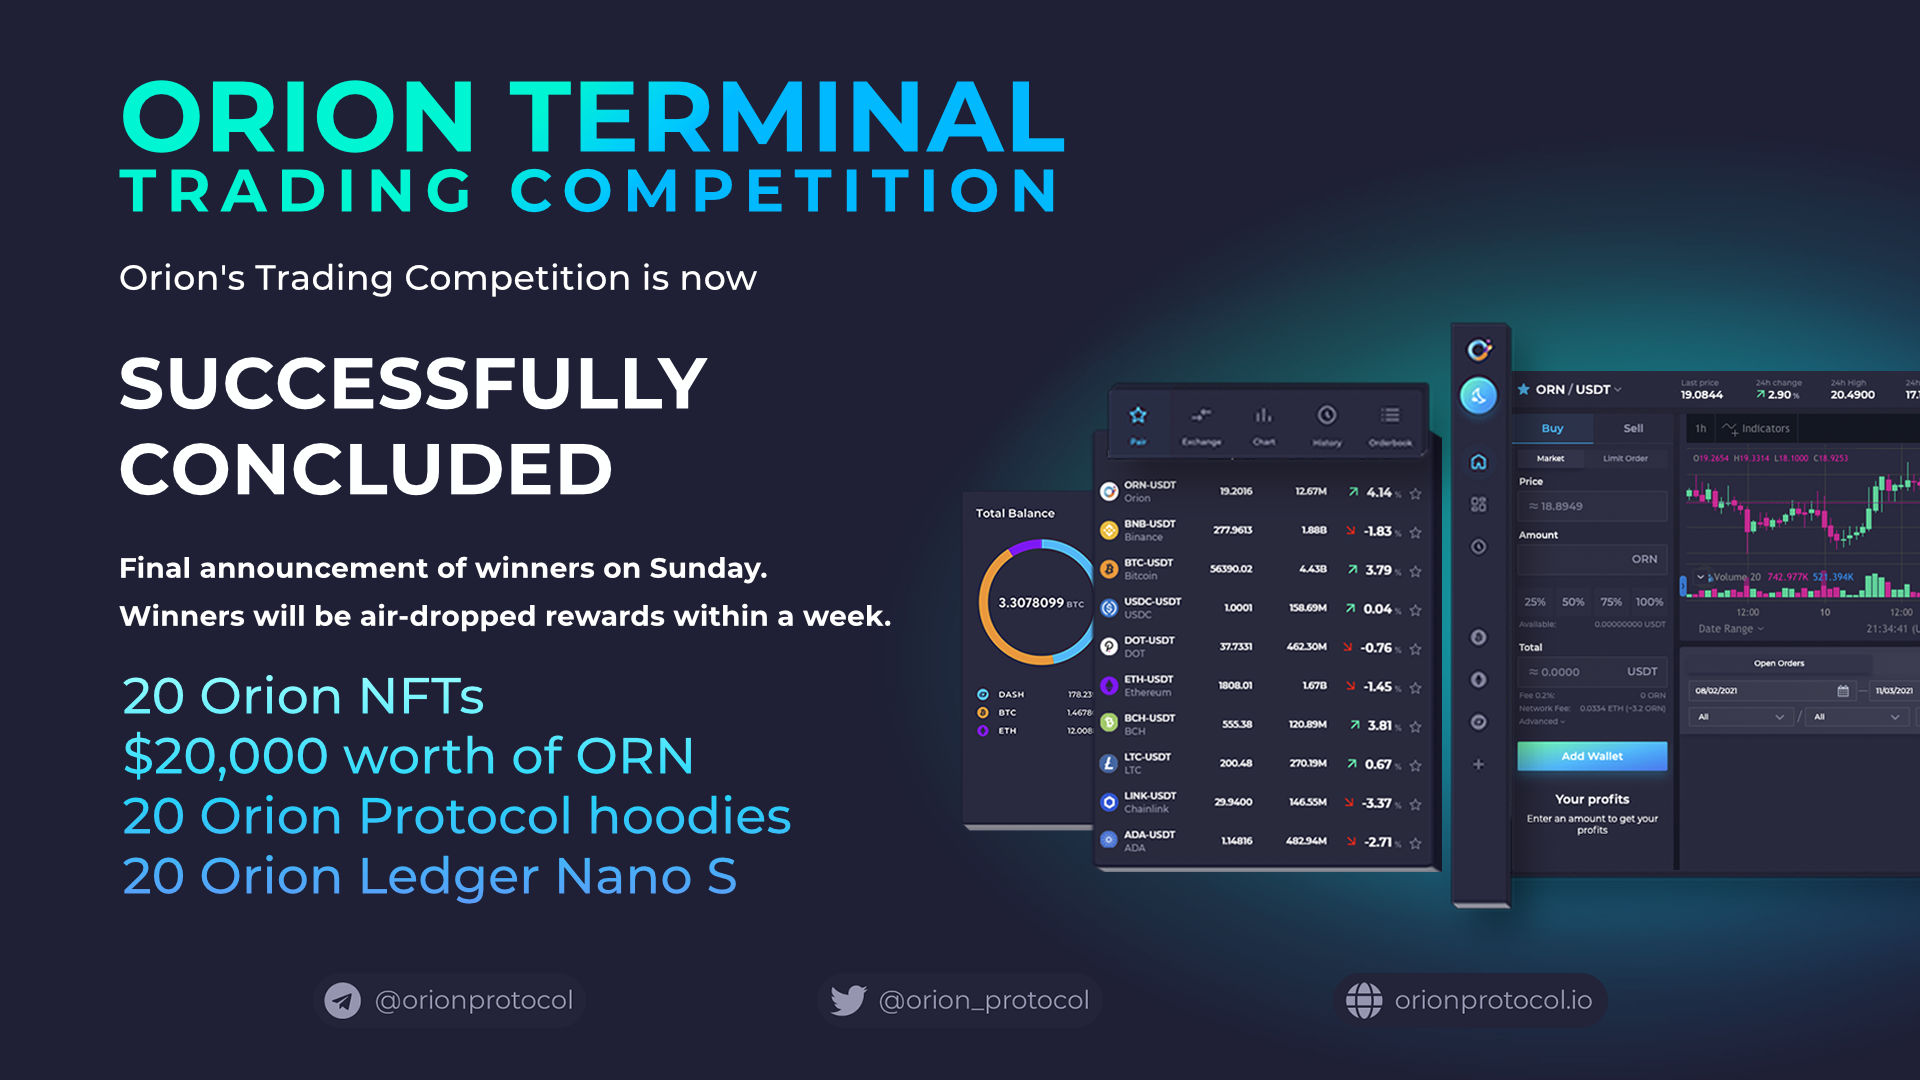 Trading Competition Success